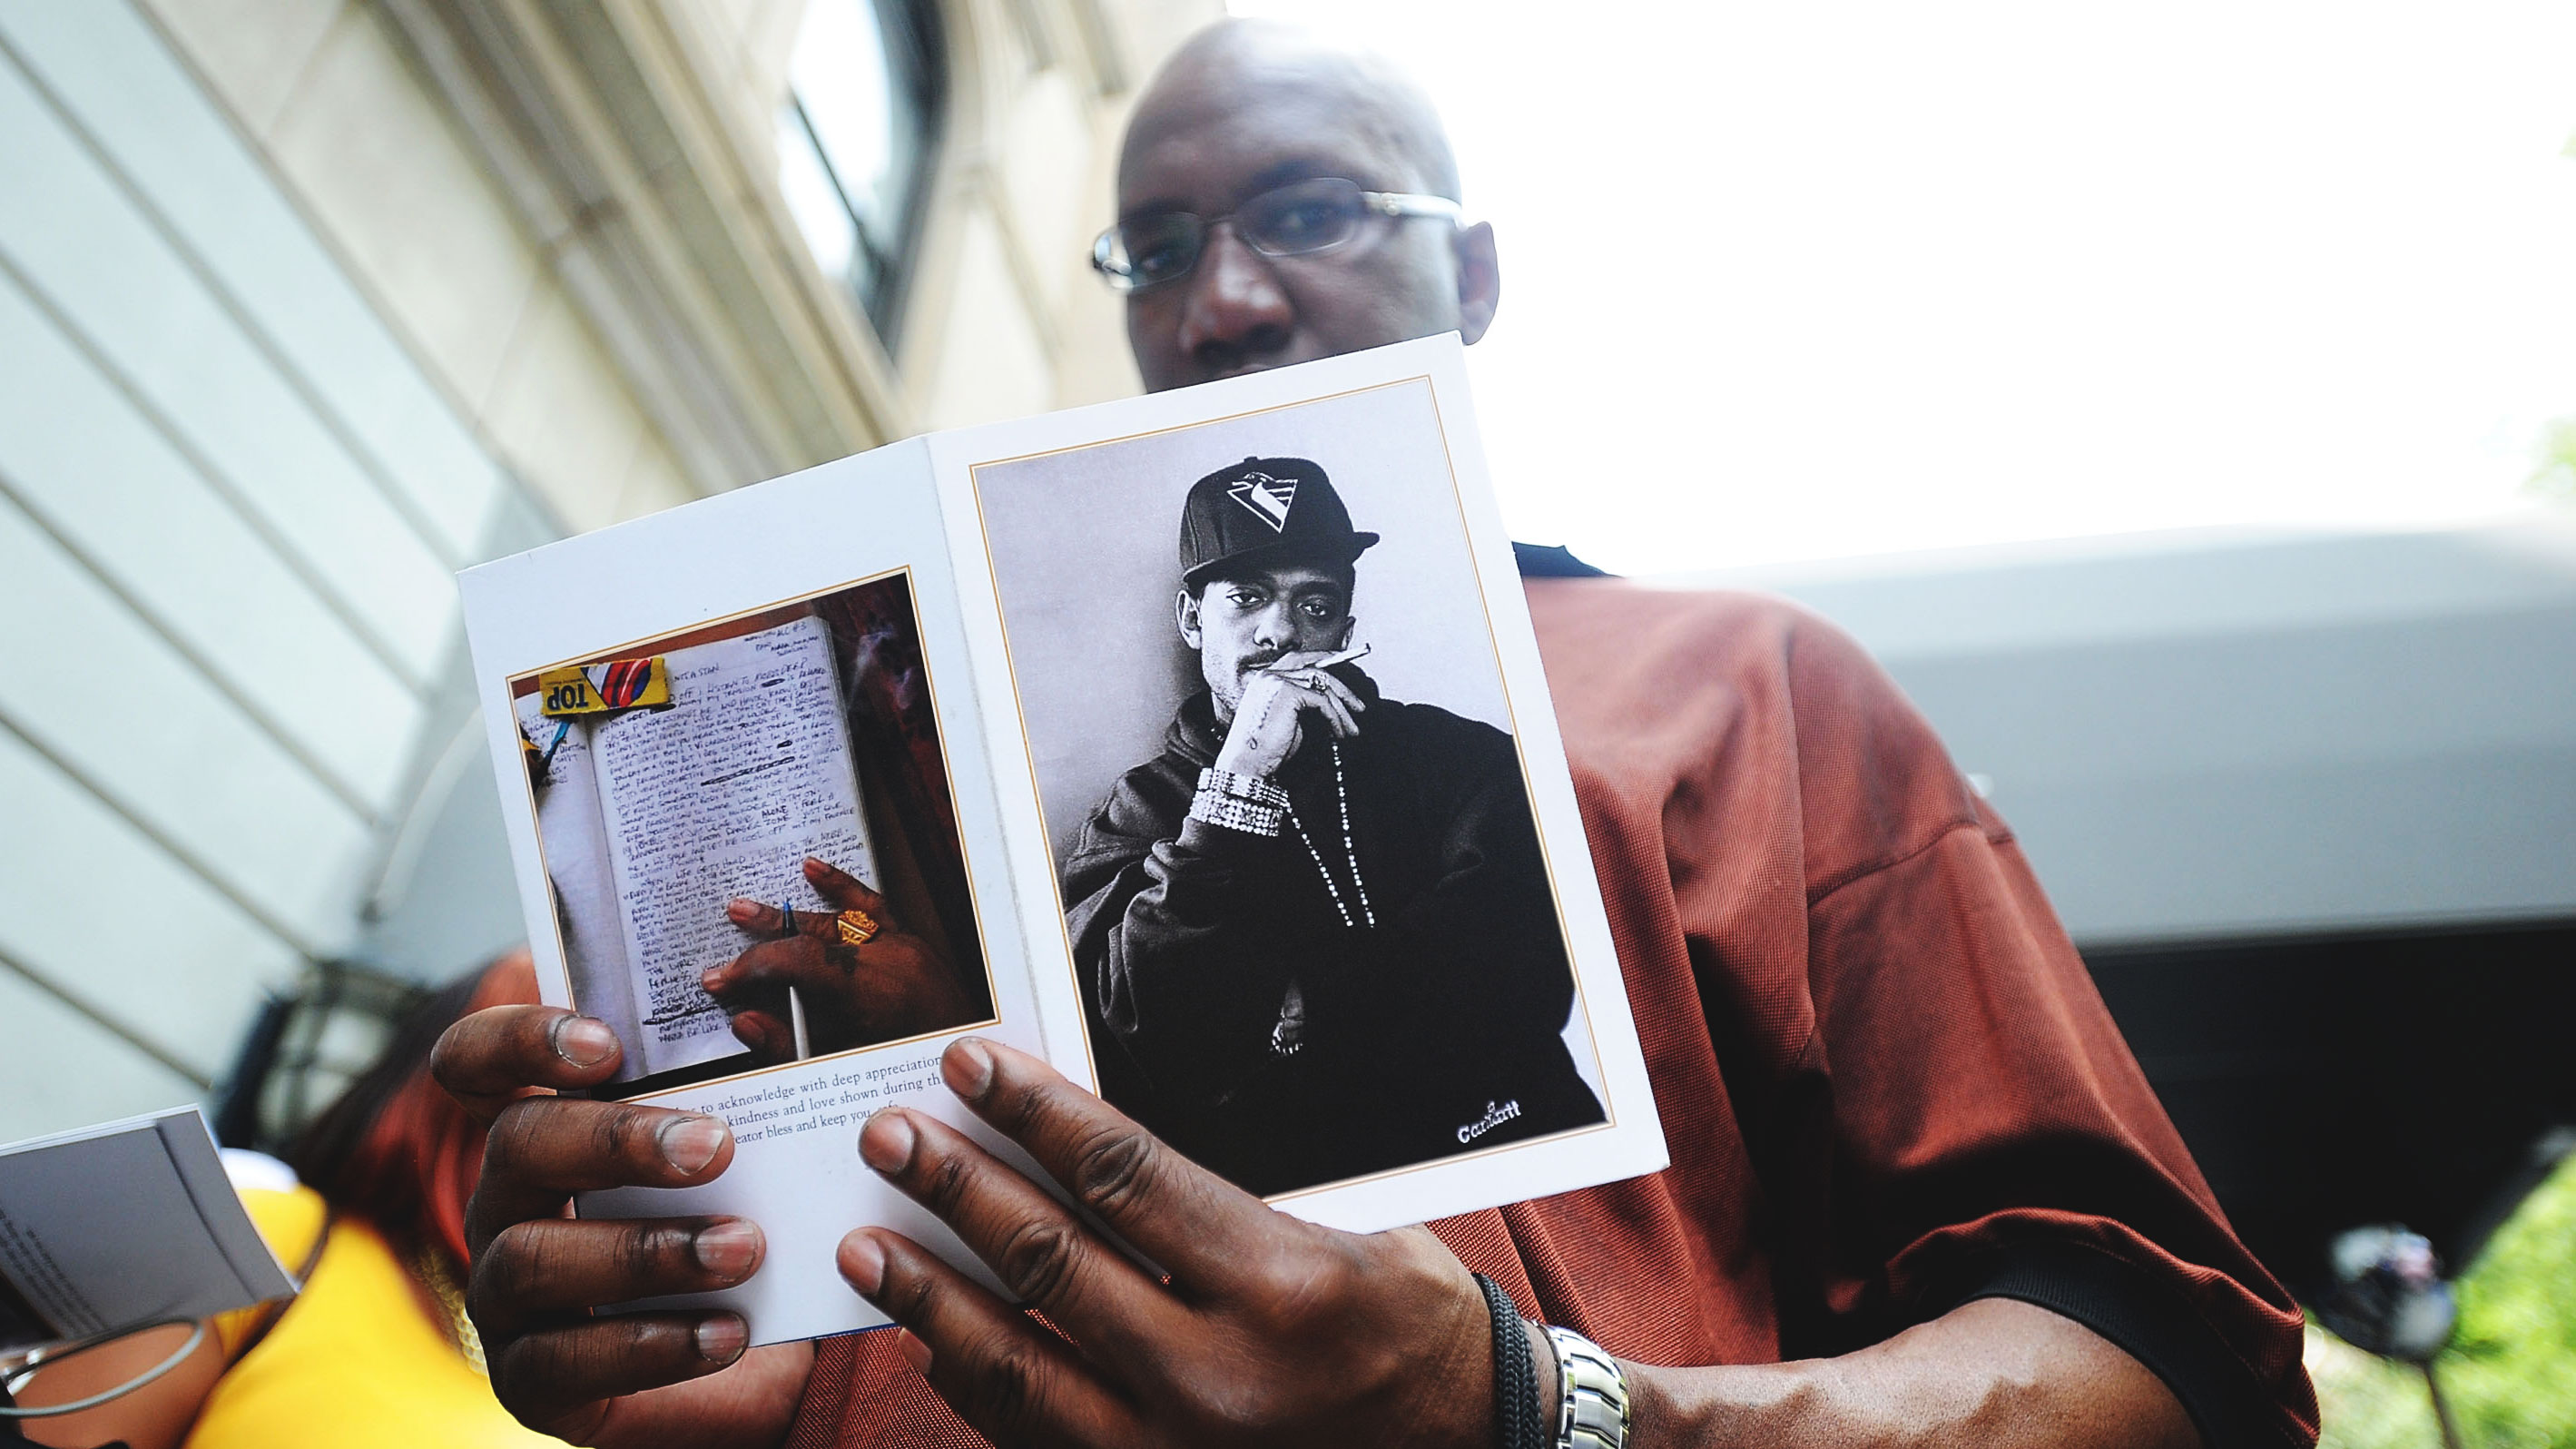 Funeral Held For Rapper Prodigy Of Mobb Deep In New York City